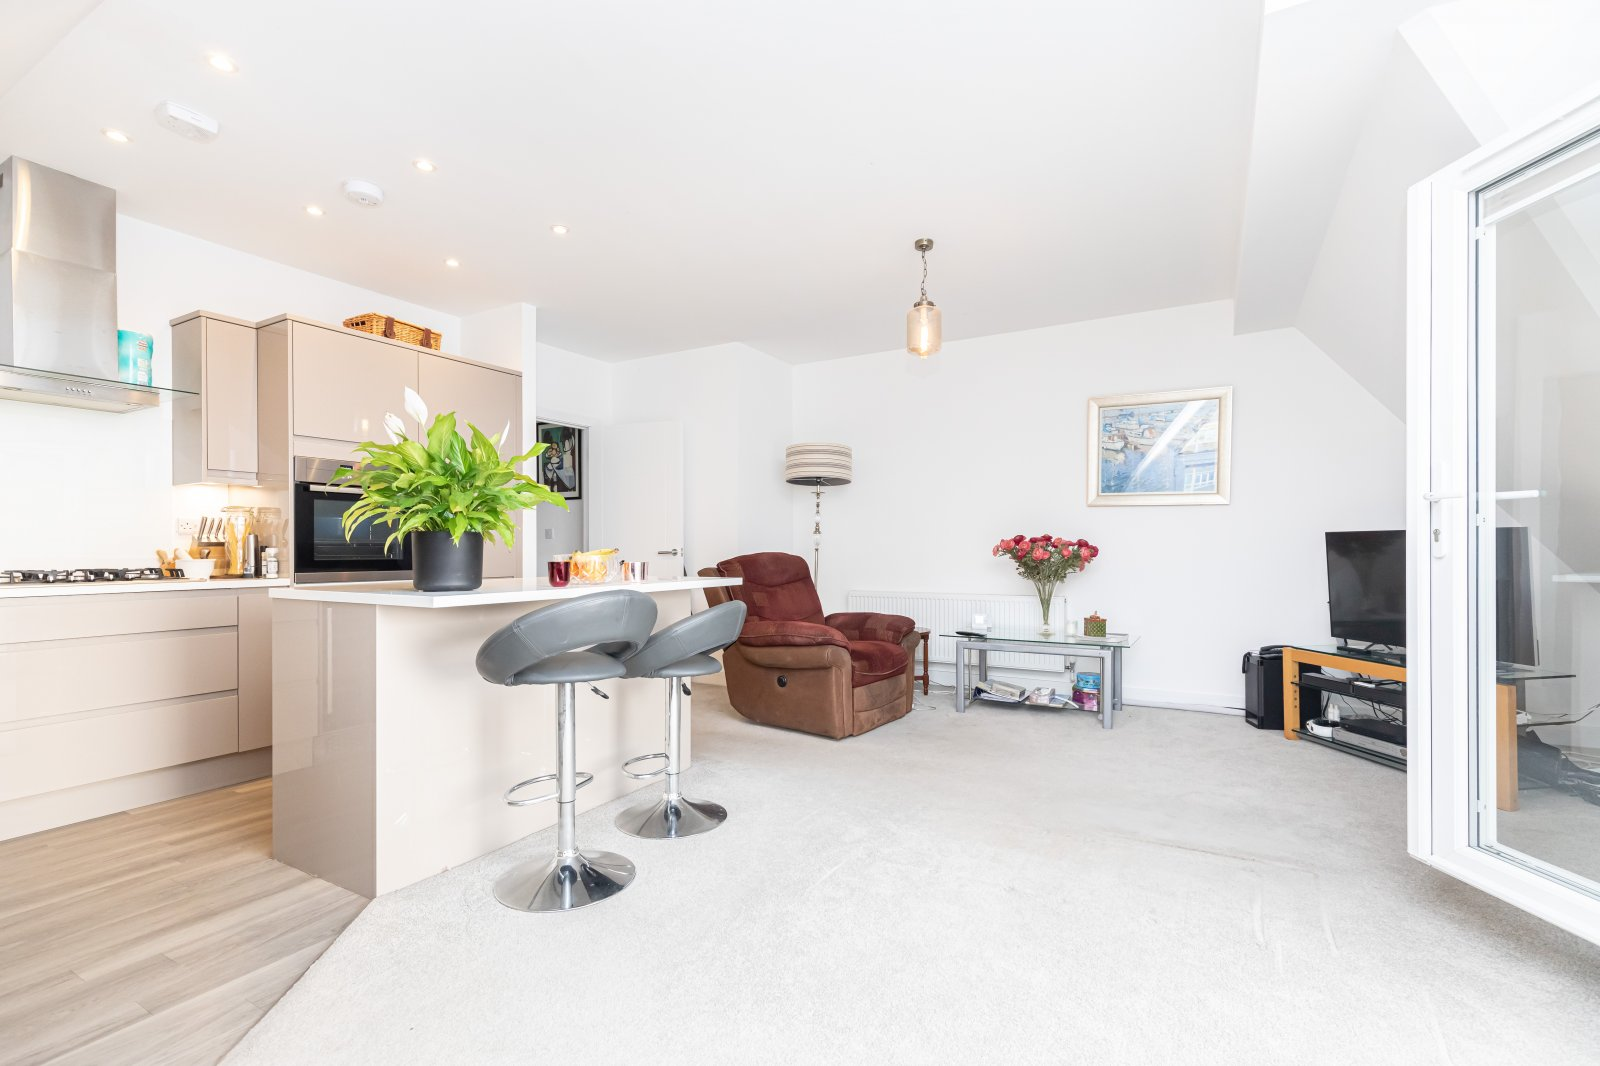 3 bed apartment for sale in Longfleet Road, Poole, BH15